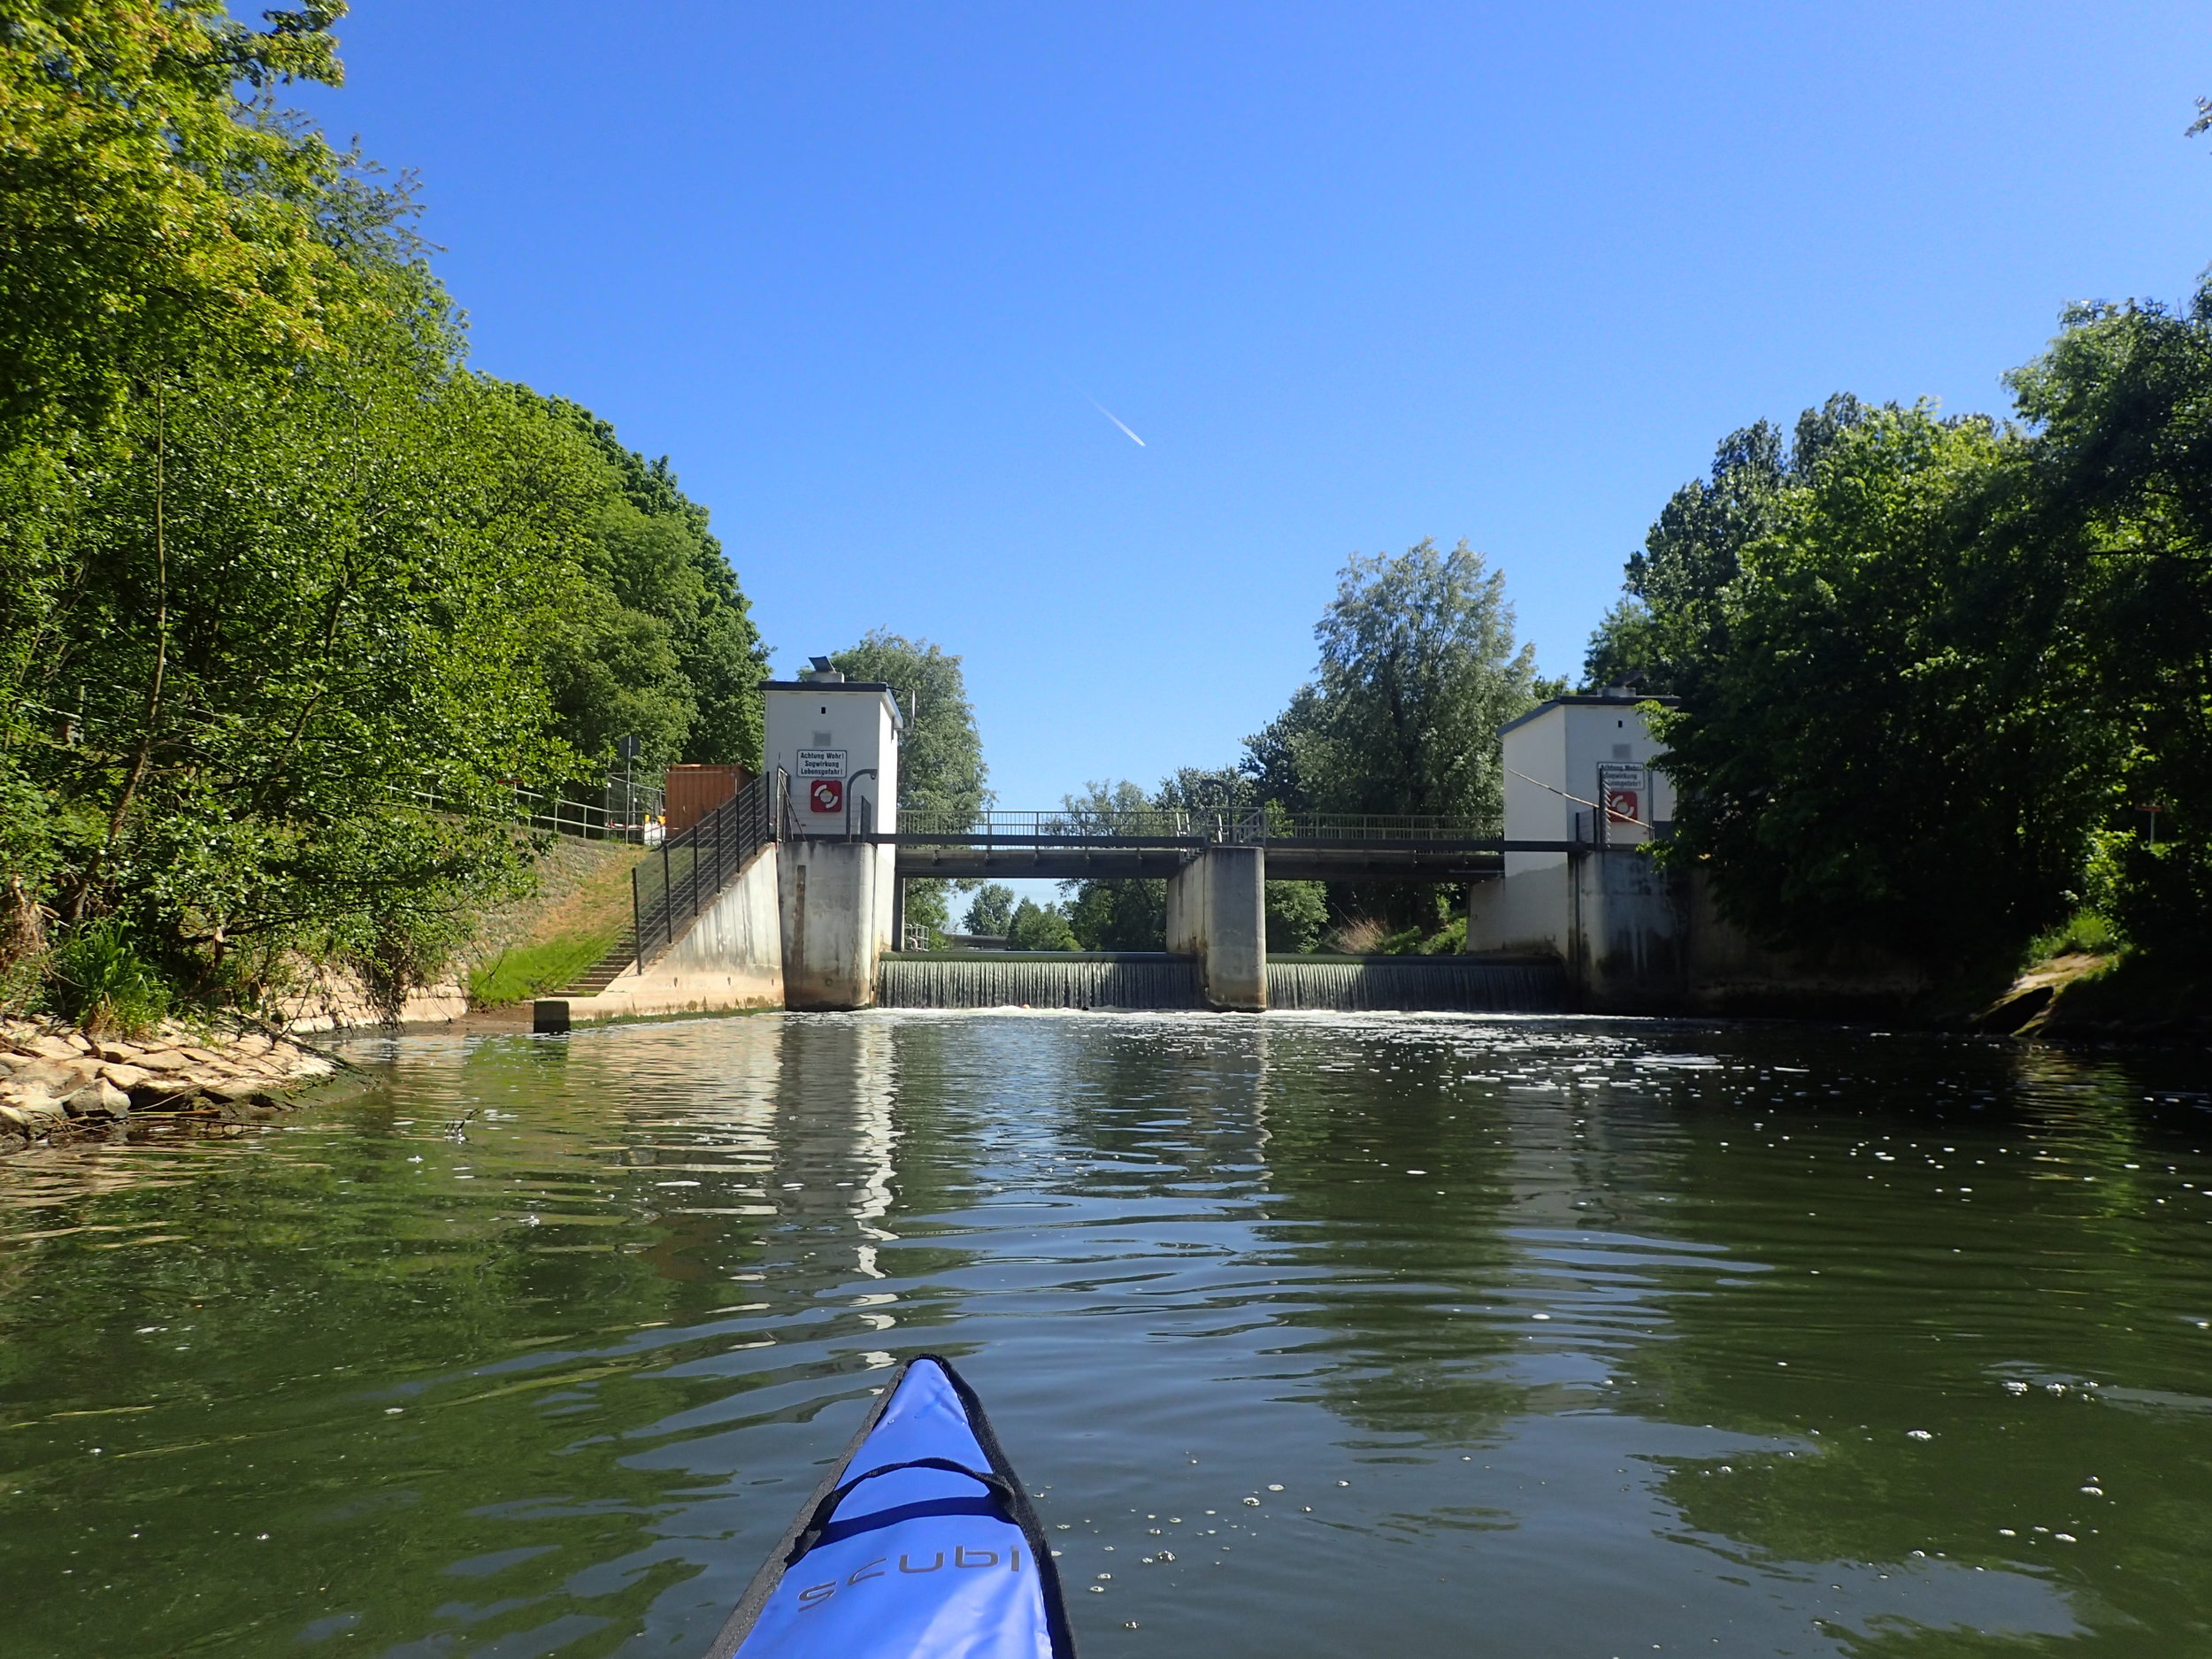 Quick look back upstream to confirm that it is better to carry the boat around this barrage.